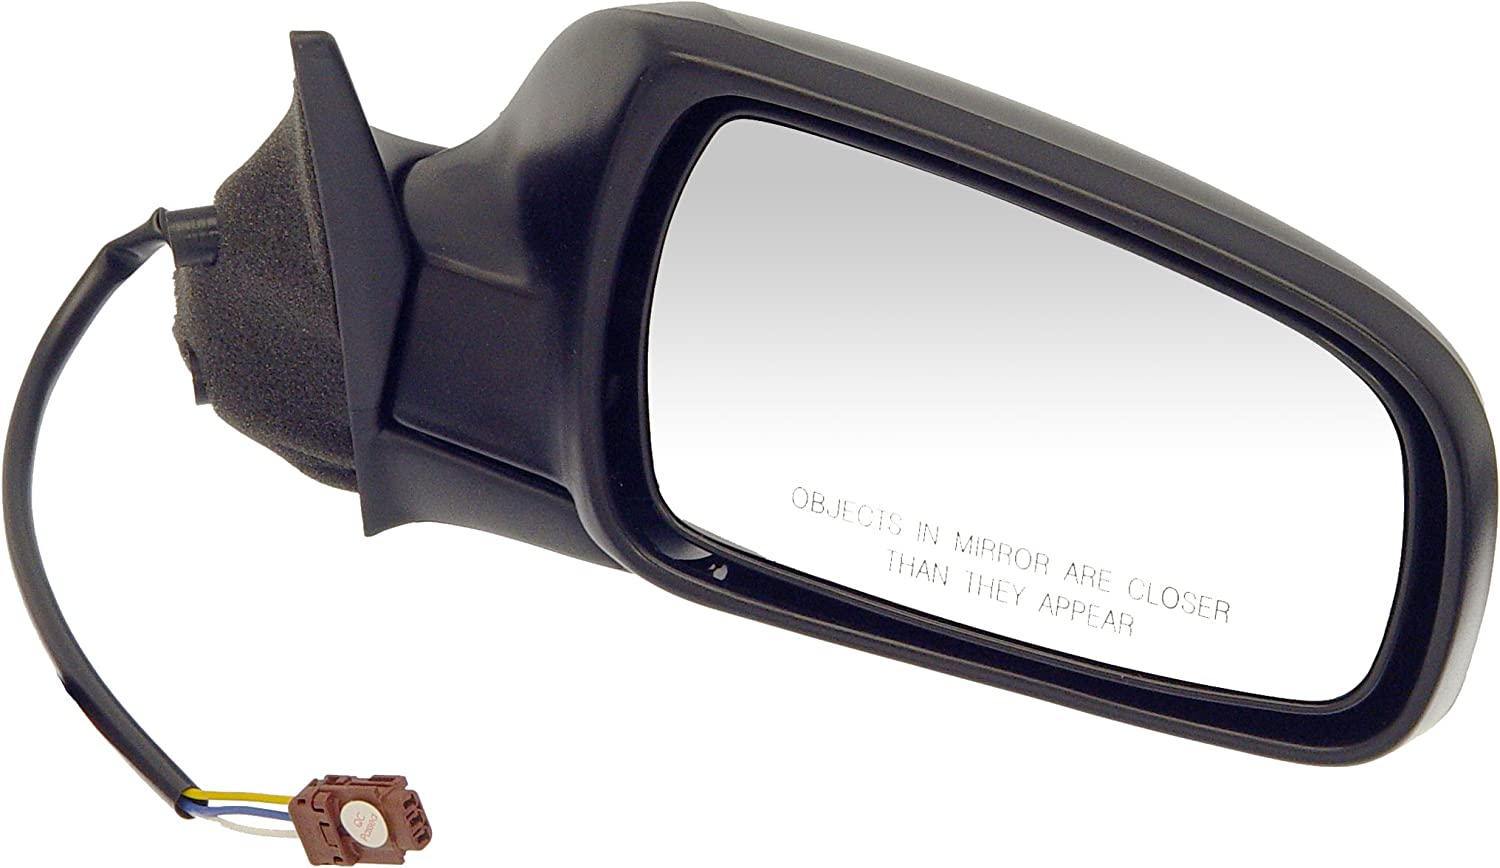 Black Dorman 955-441 Driver Side Power Door Mirror Nissan Models Folding for Select Infiniti